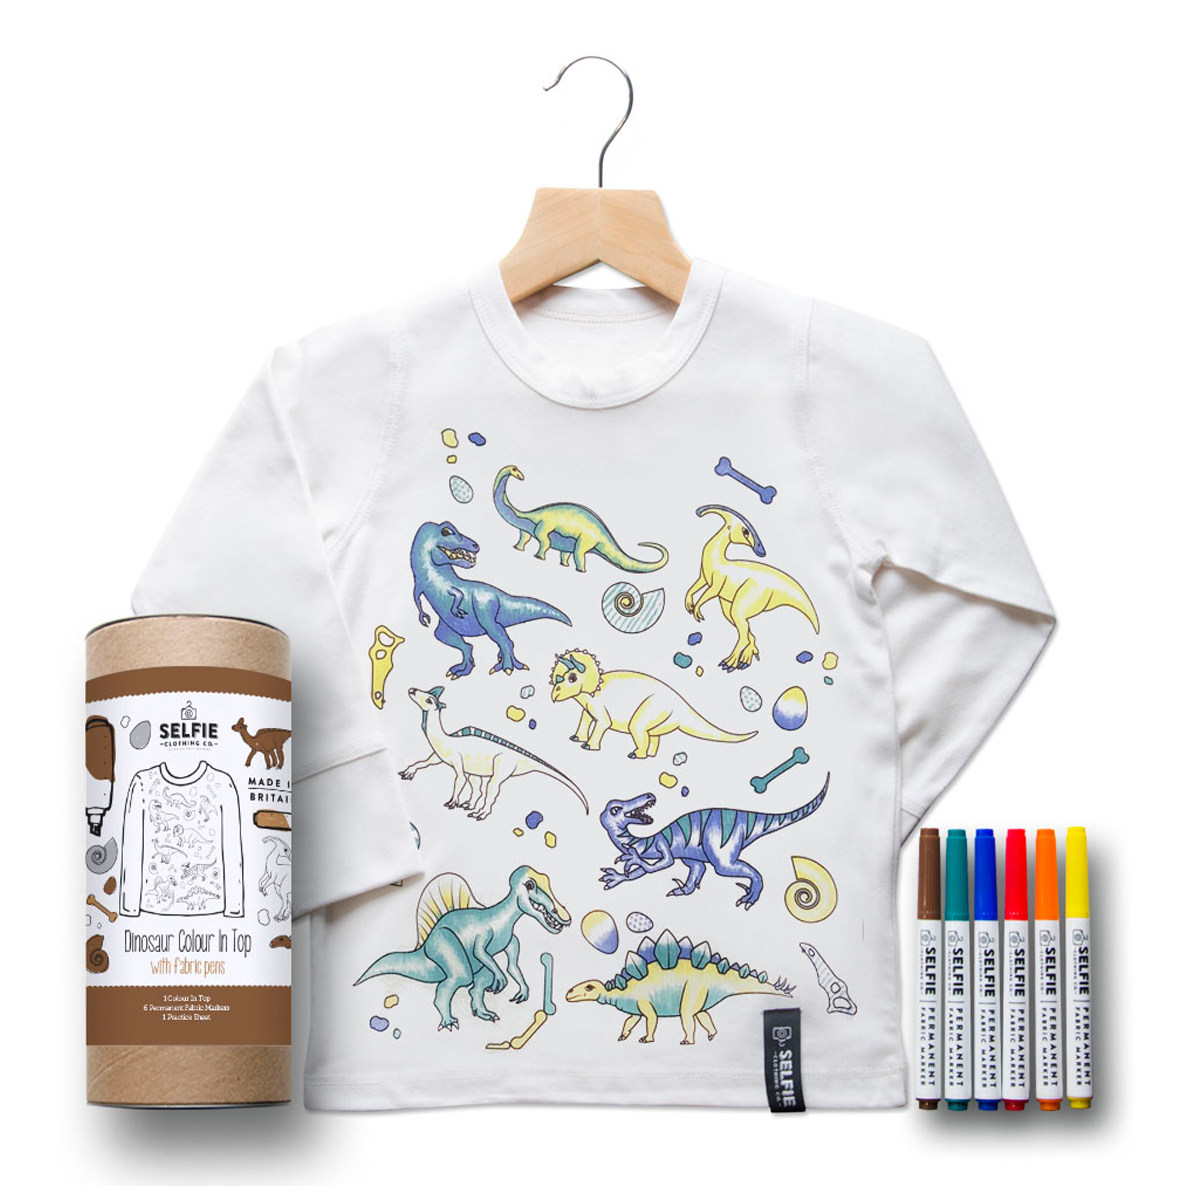 Selfie Clothing Co Colo In Top Dinosaur